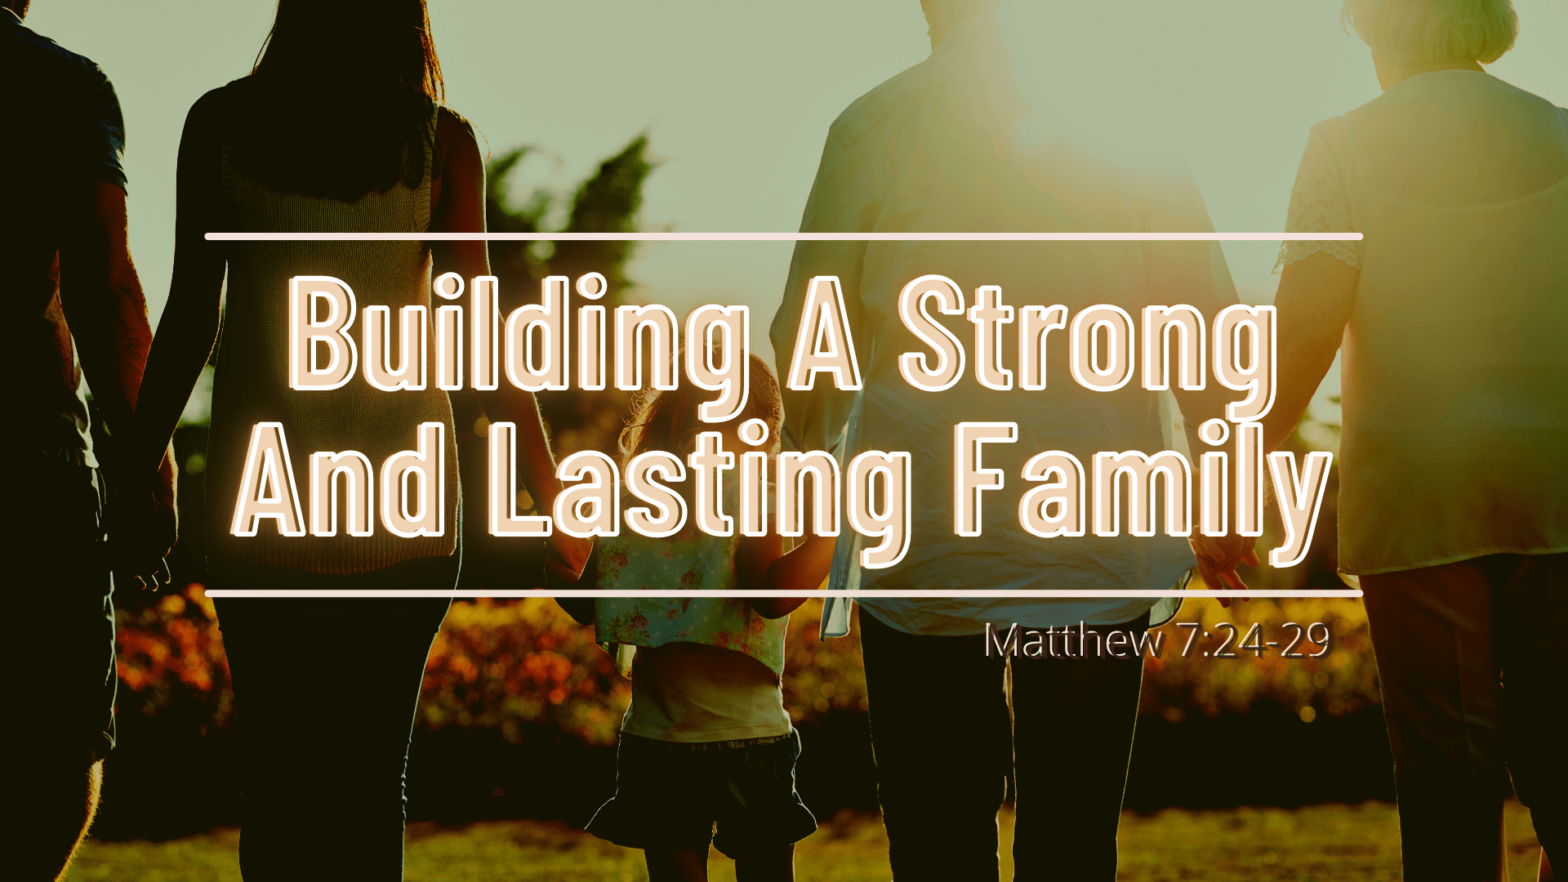 Building A Strong And Lasting Family